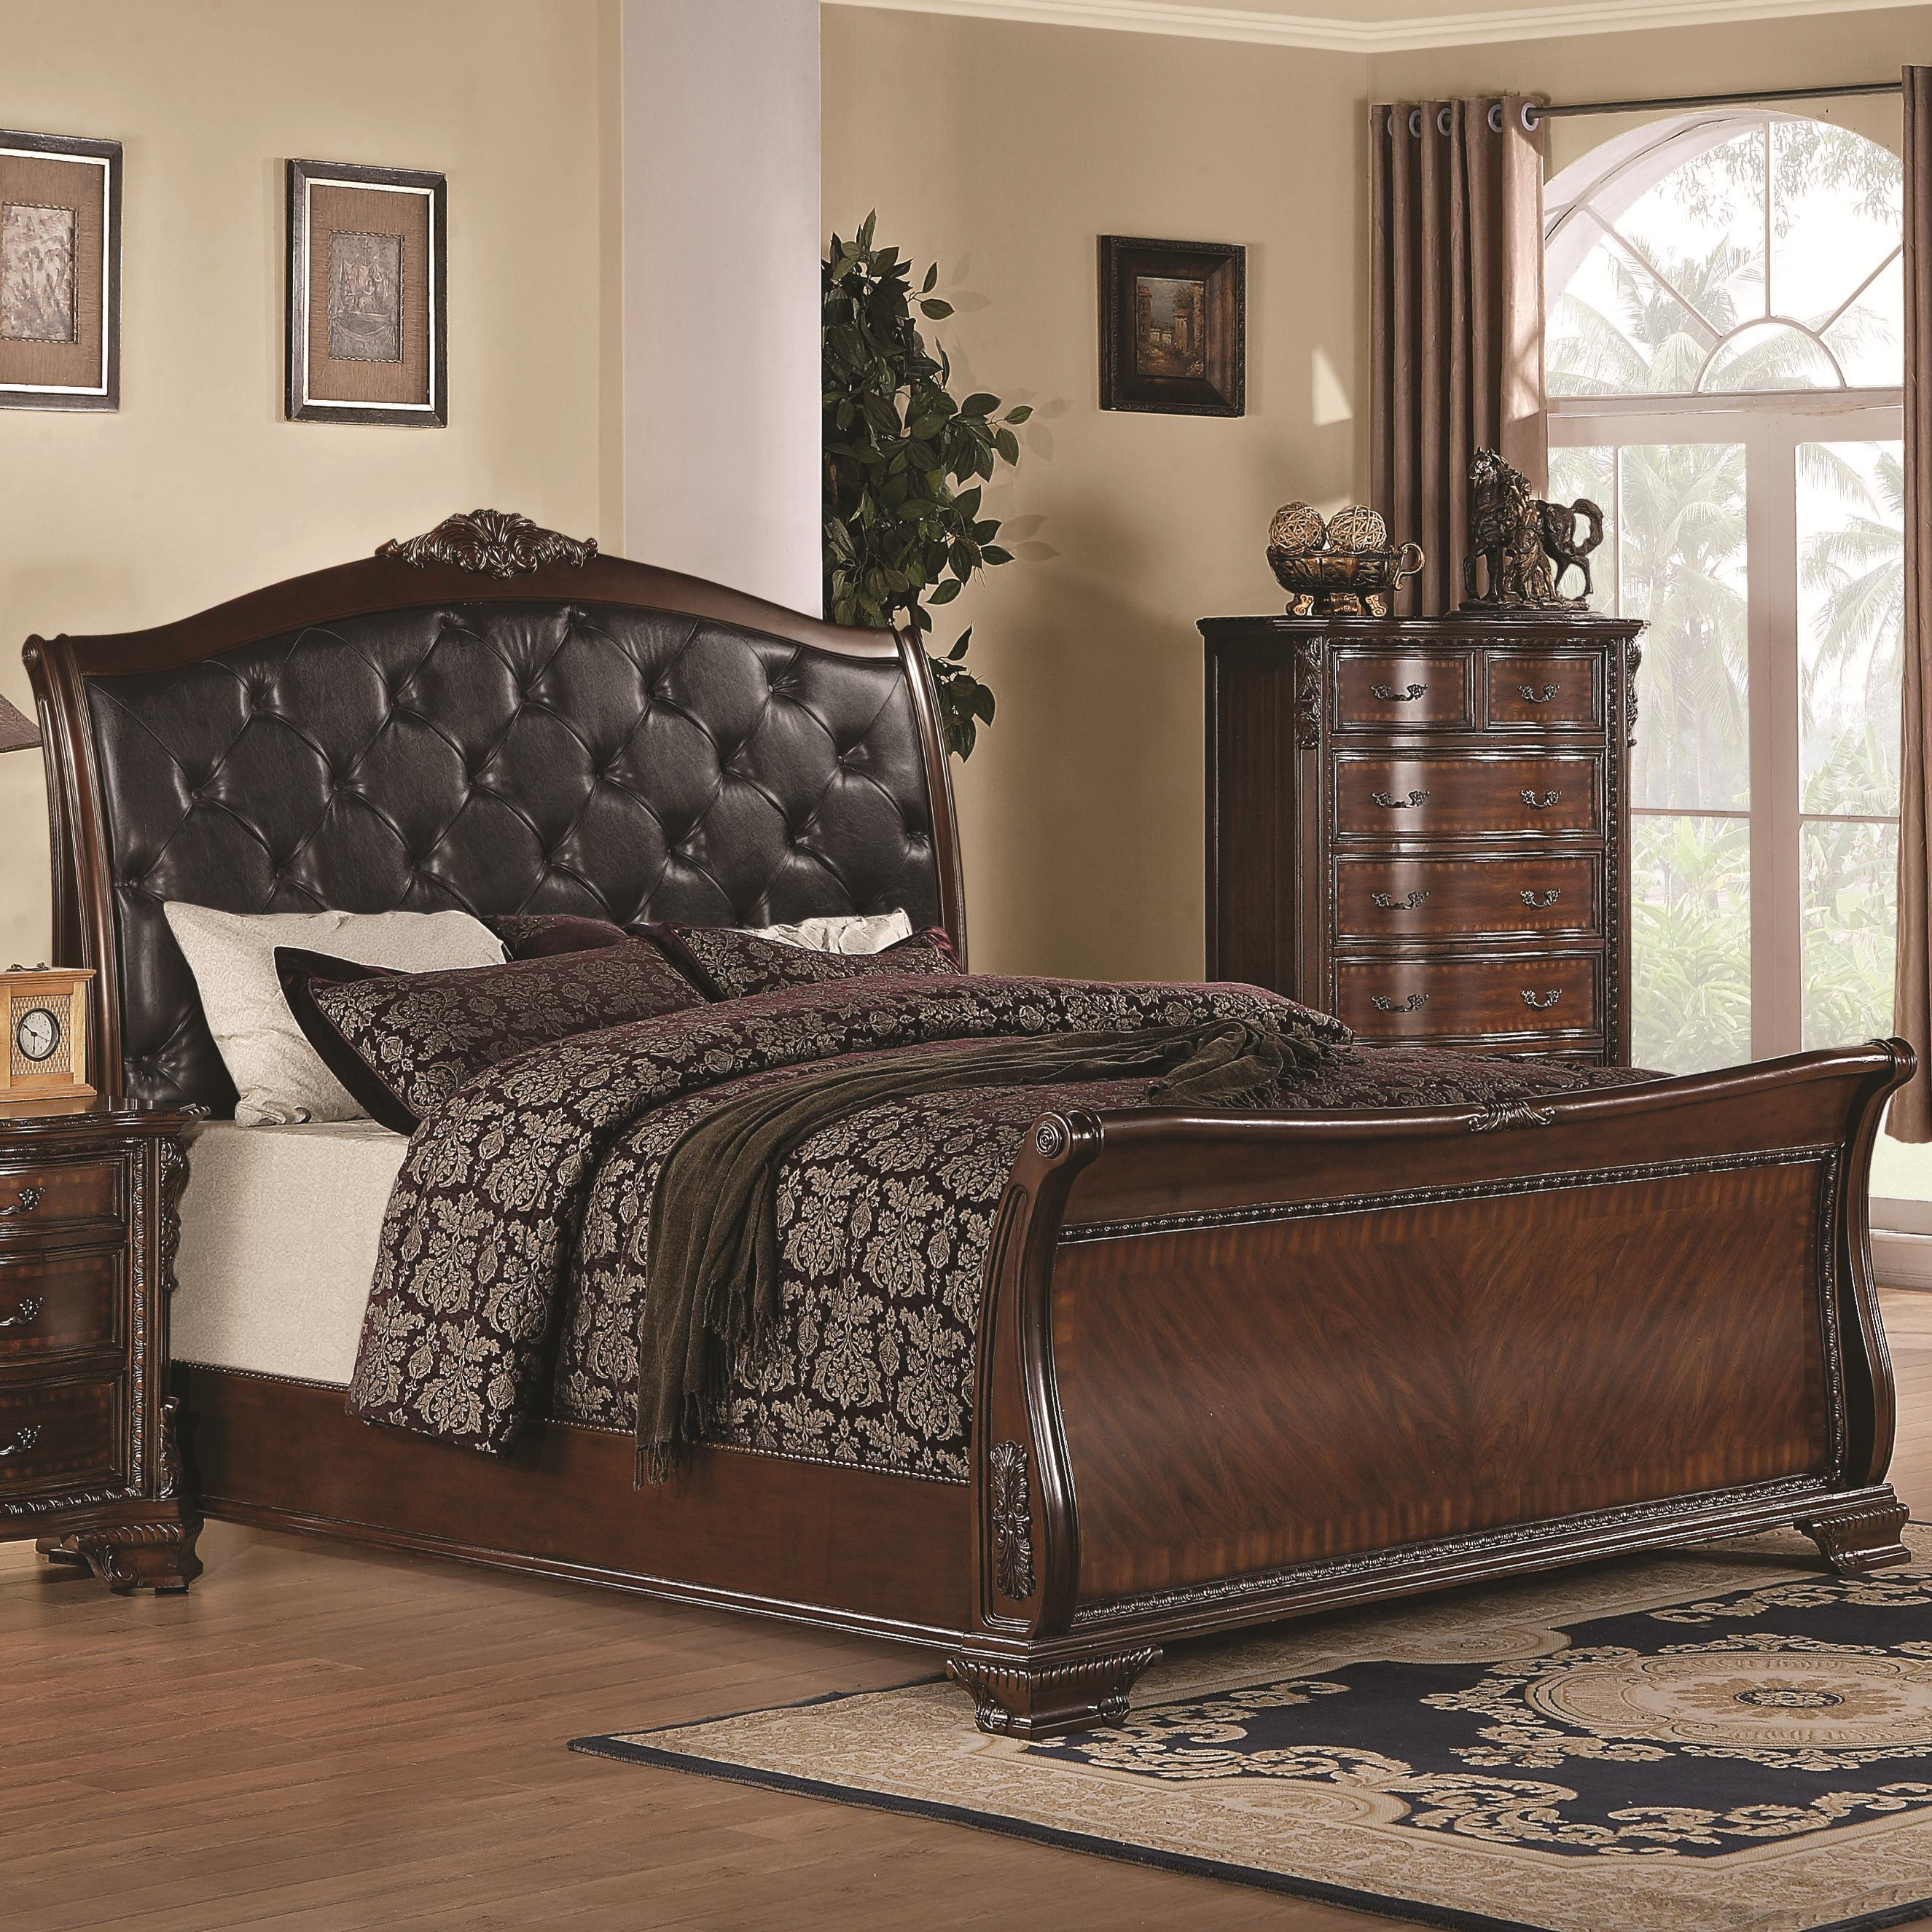 Coaster Maddison King Bed - Item Number: 202261KE